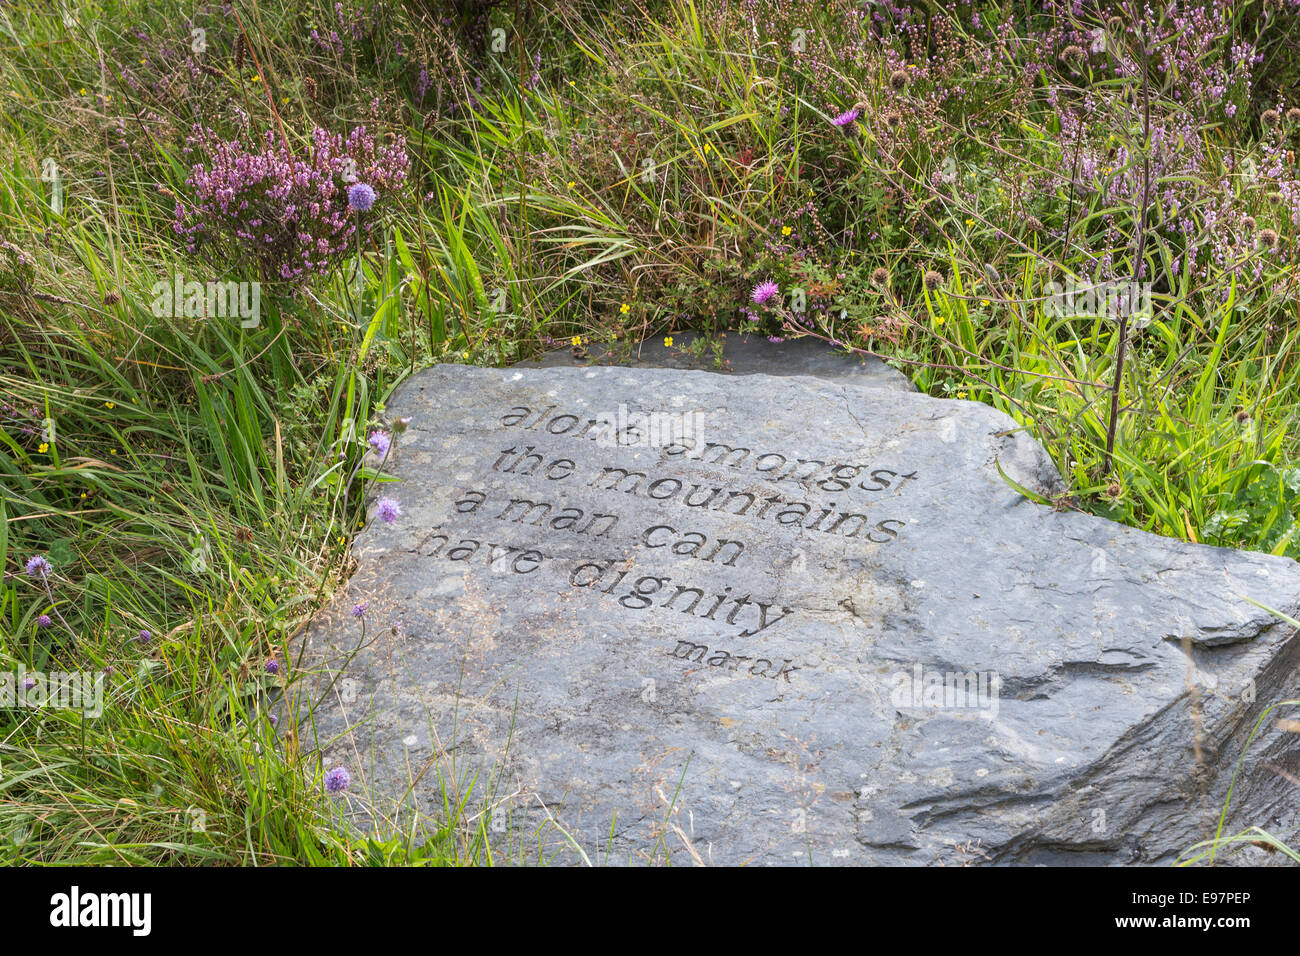 Quote on stone on Ballachulish hill near Glencoe in Scotland. - Stock Image